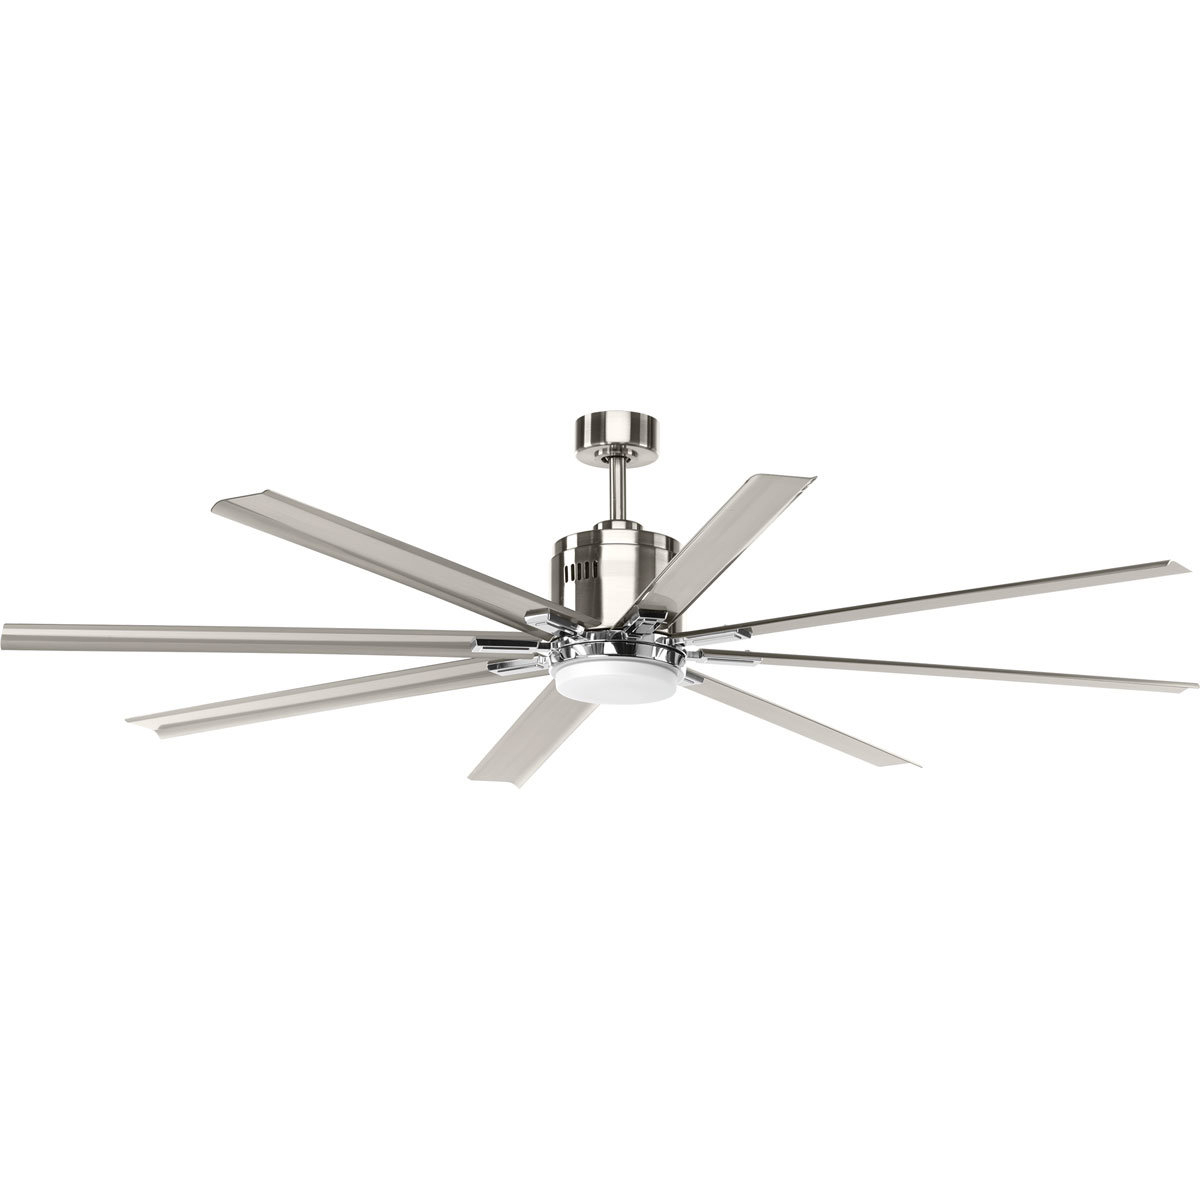 """Bankston 8 Blade Led Ceiling Fans Regarding Most Recently Released 72"""" Bankston 8 Blade Led Ceiling Fan With Remote, Light Kit Included (View 5 of 20)"""